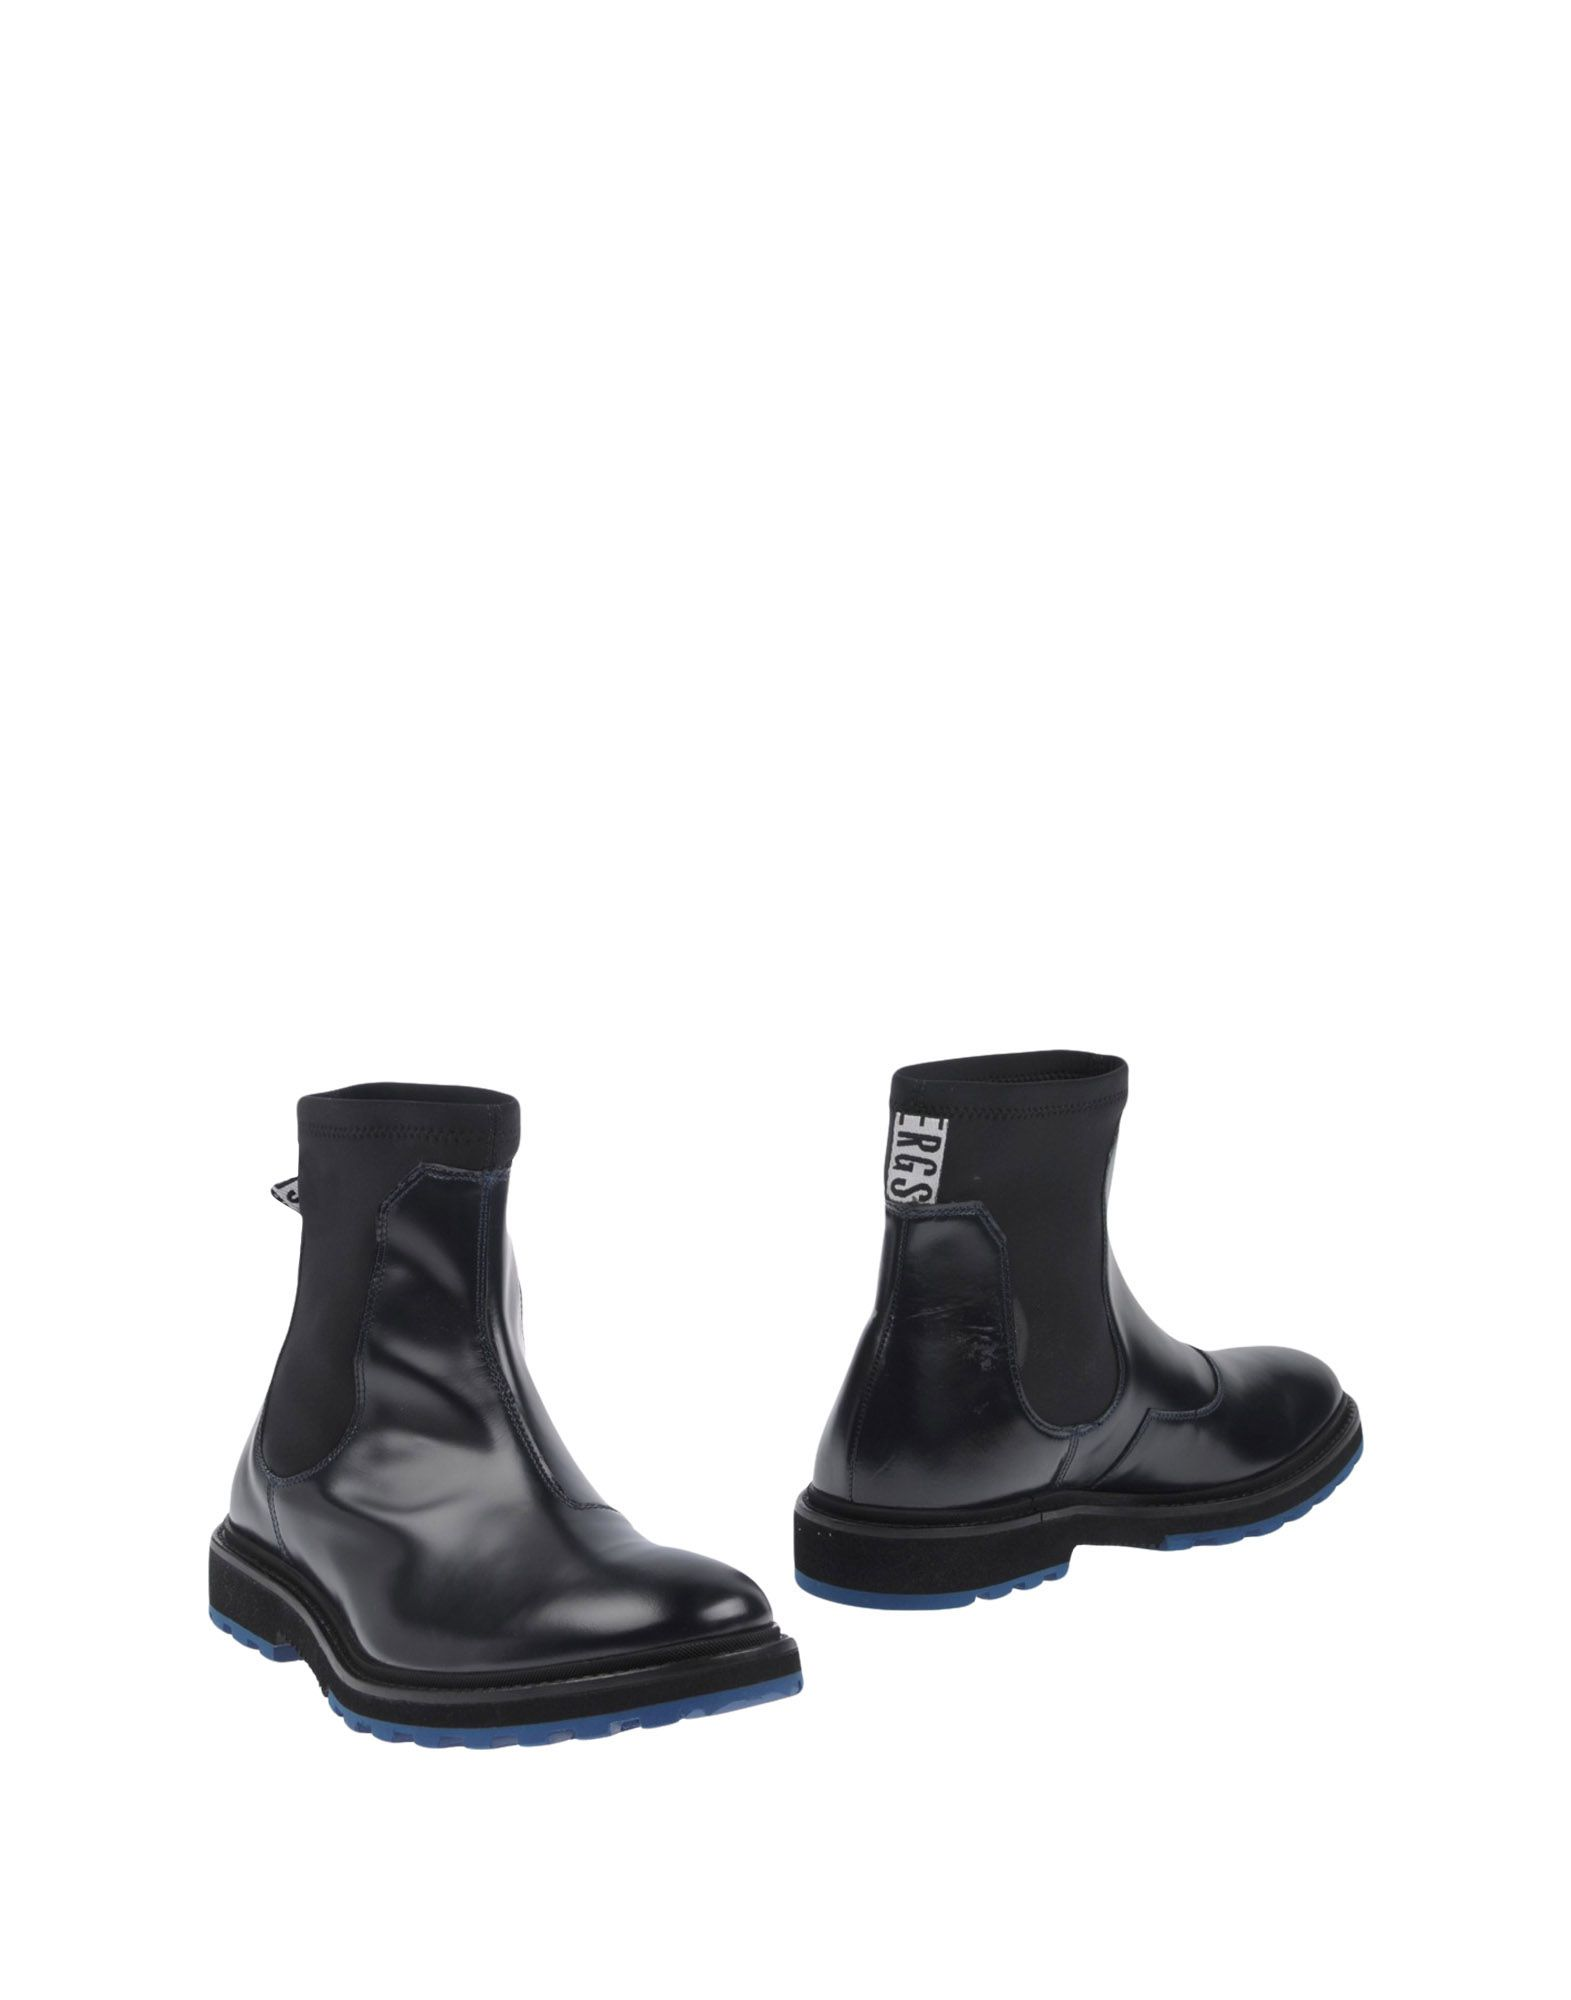 Bottine Bikkembergs Homme - Bottines Bikkembergs sur